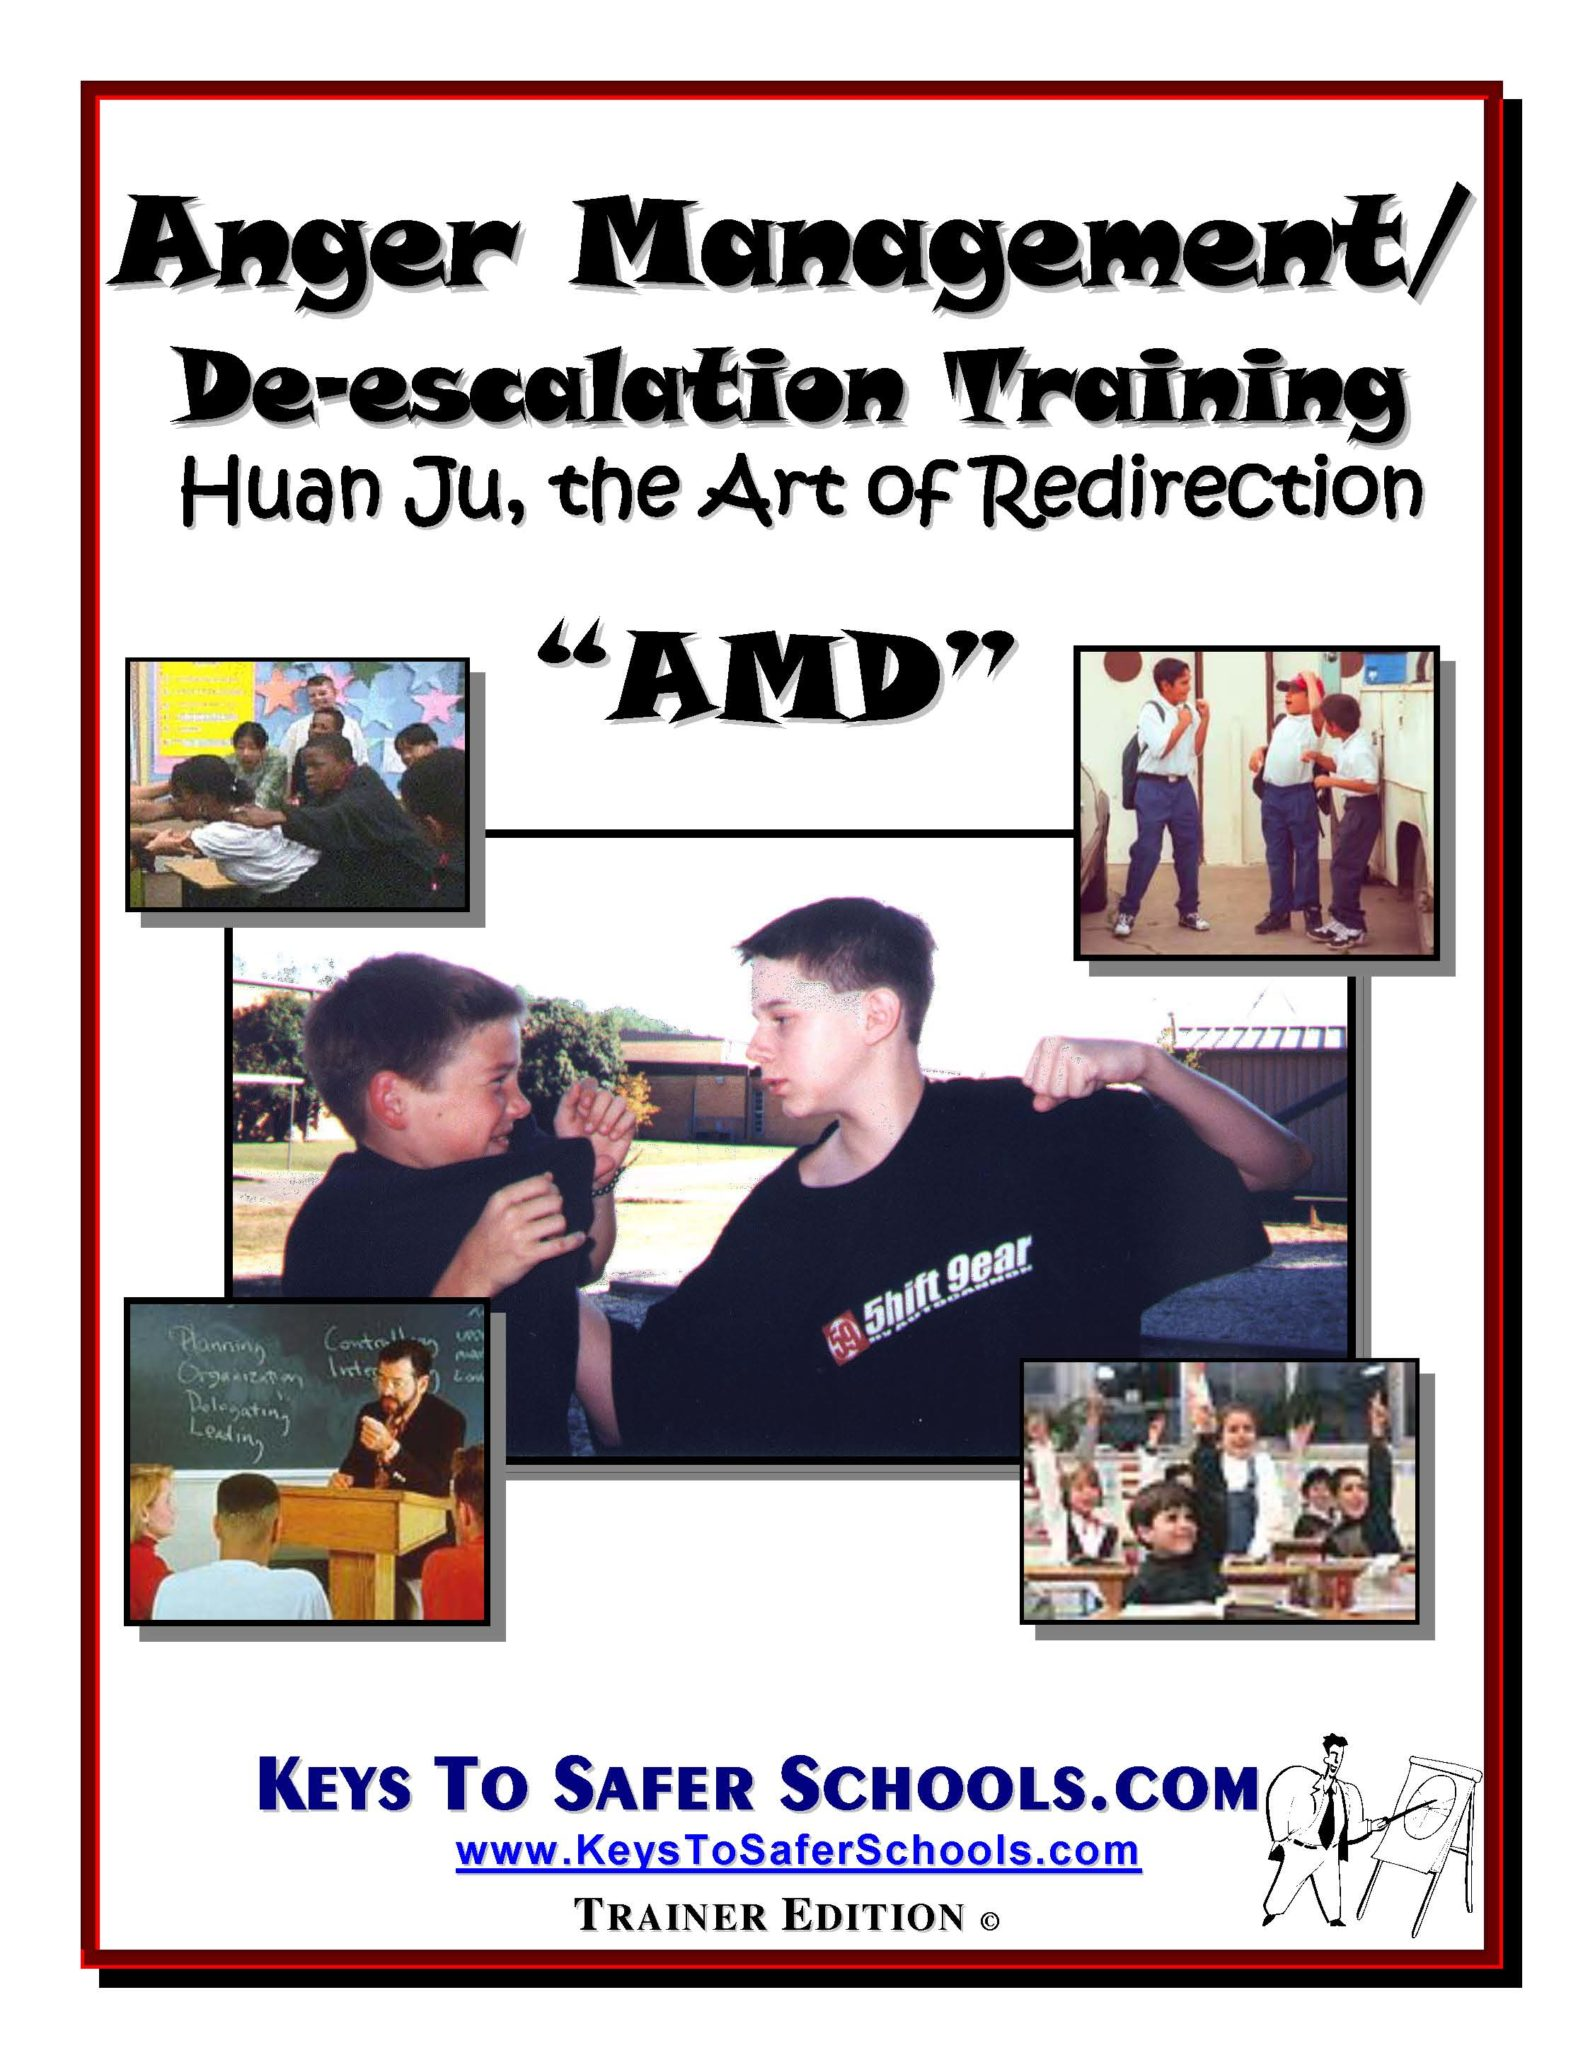 Anger Management/De-escalation Training